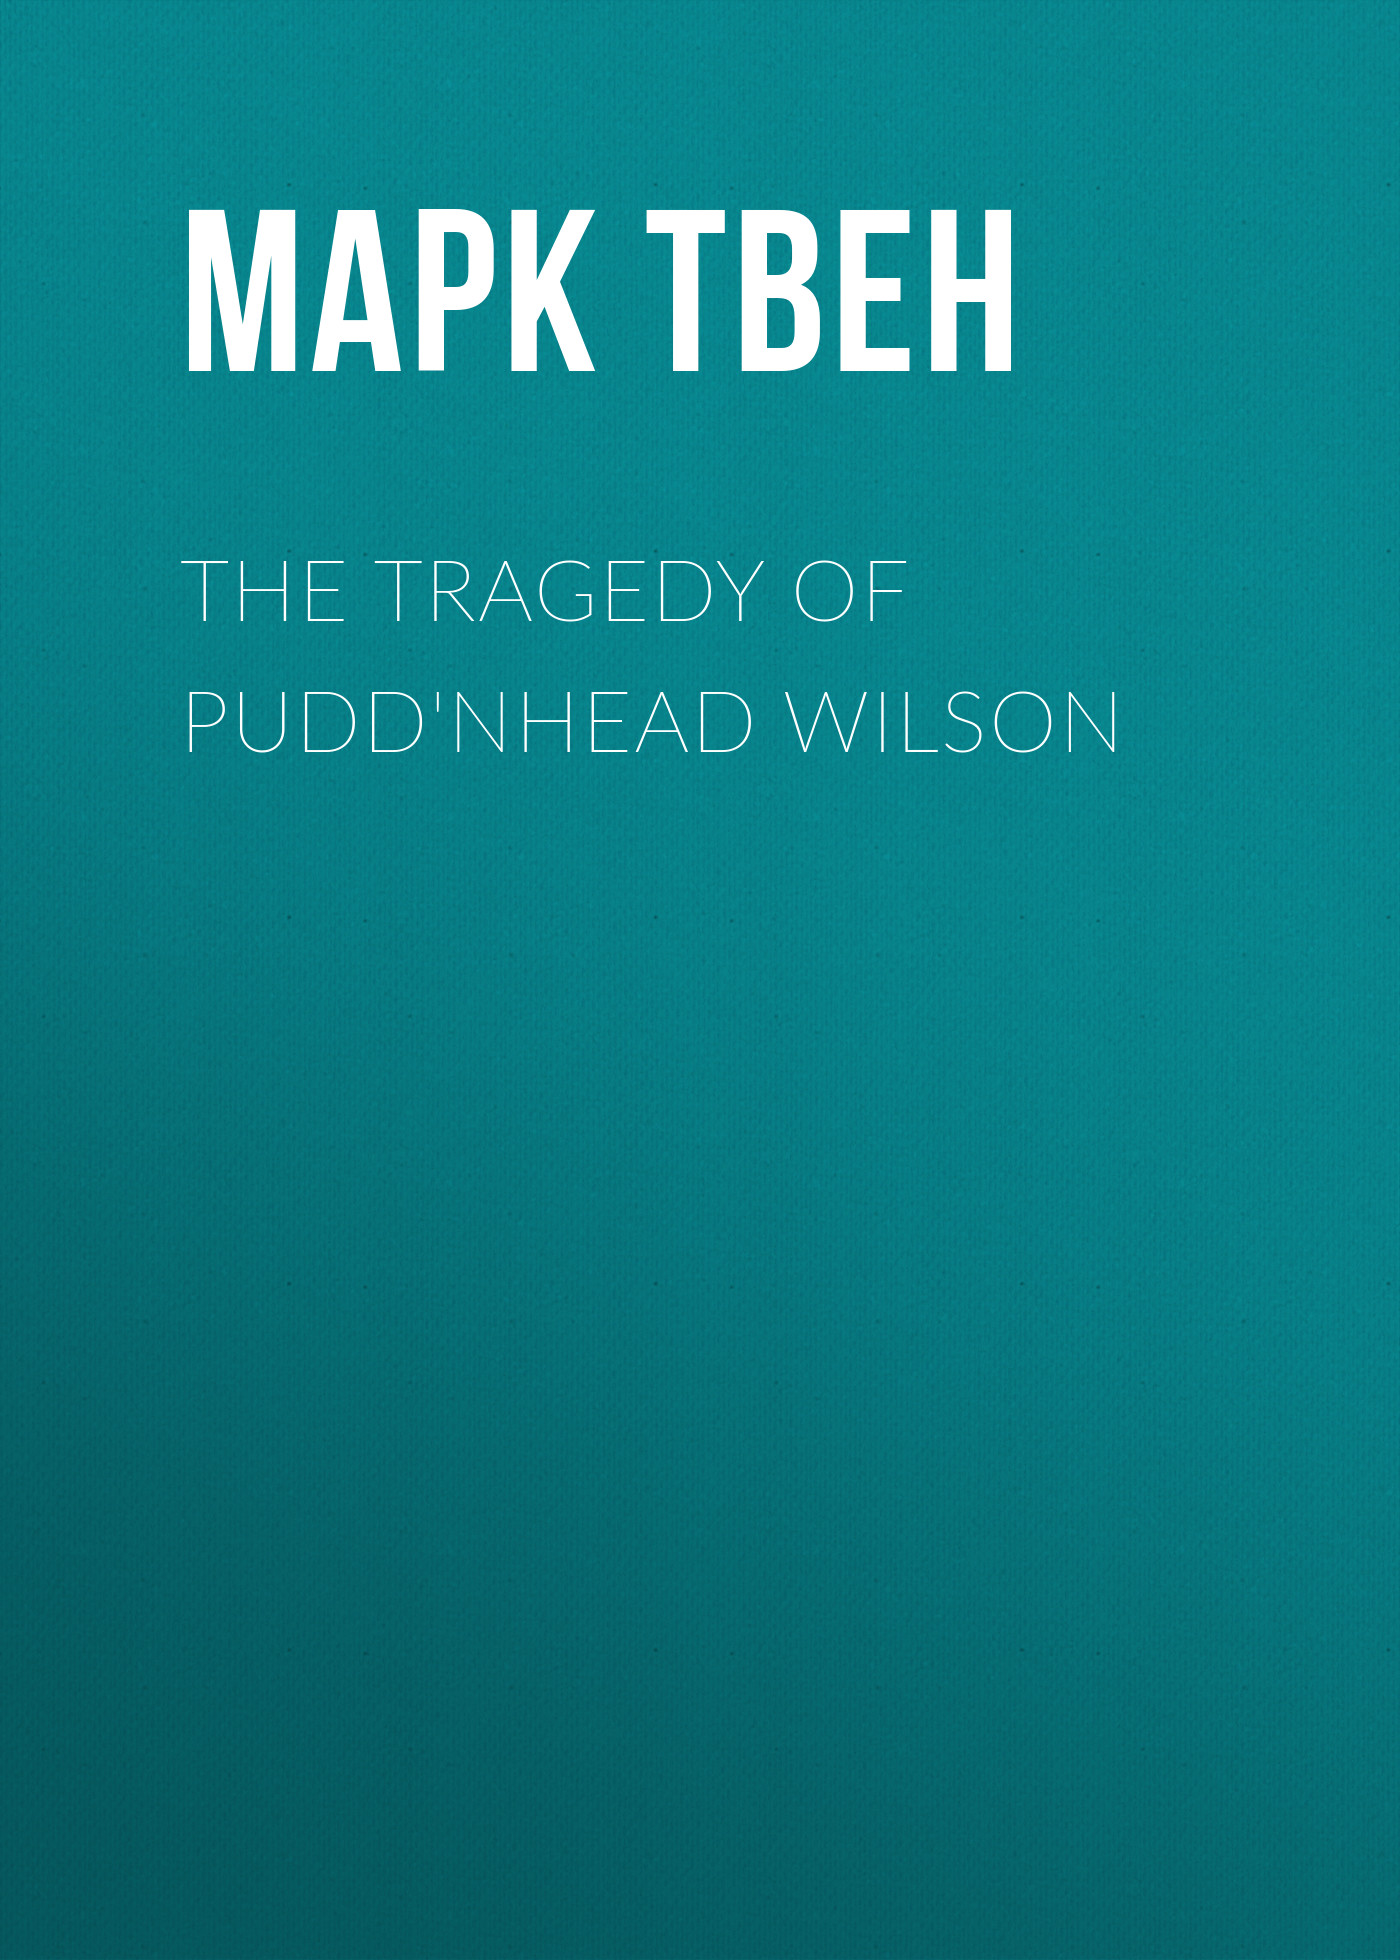 Марк Твен The Tragedy of Pudd'nhead Wilson марк твен personal recollections of joan of arc volume 1